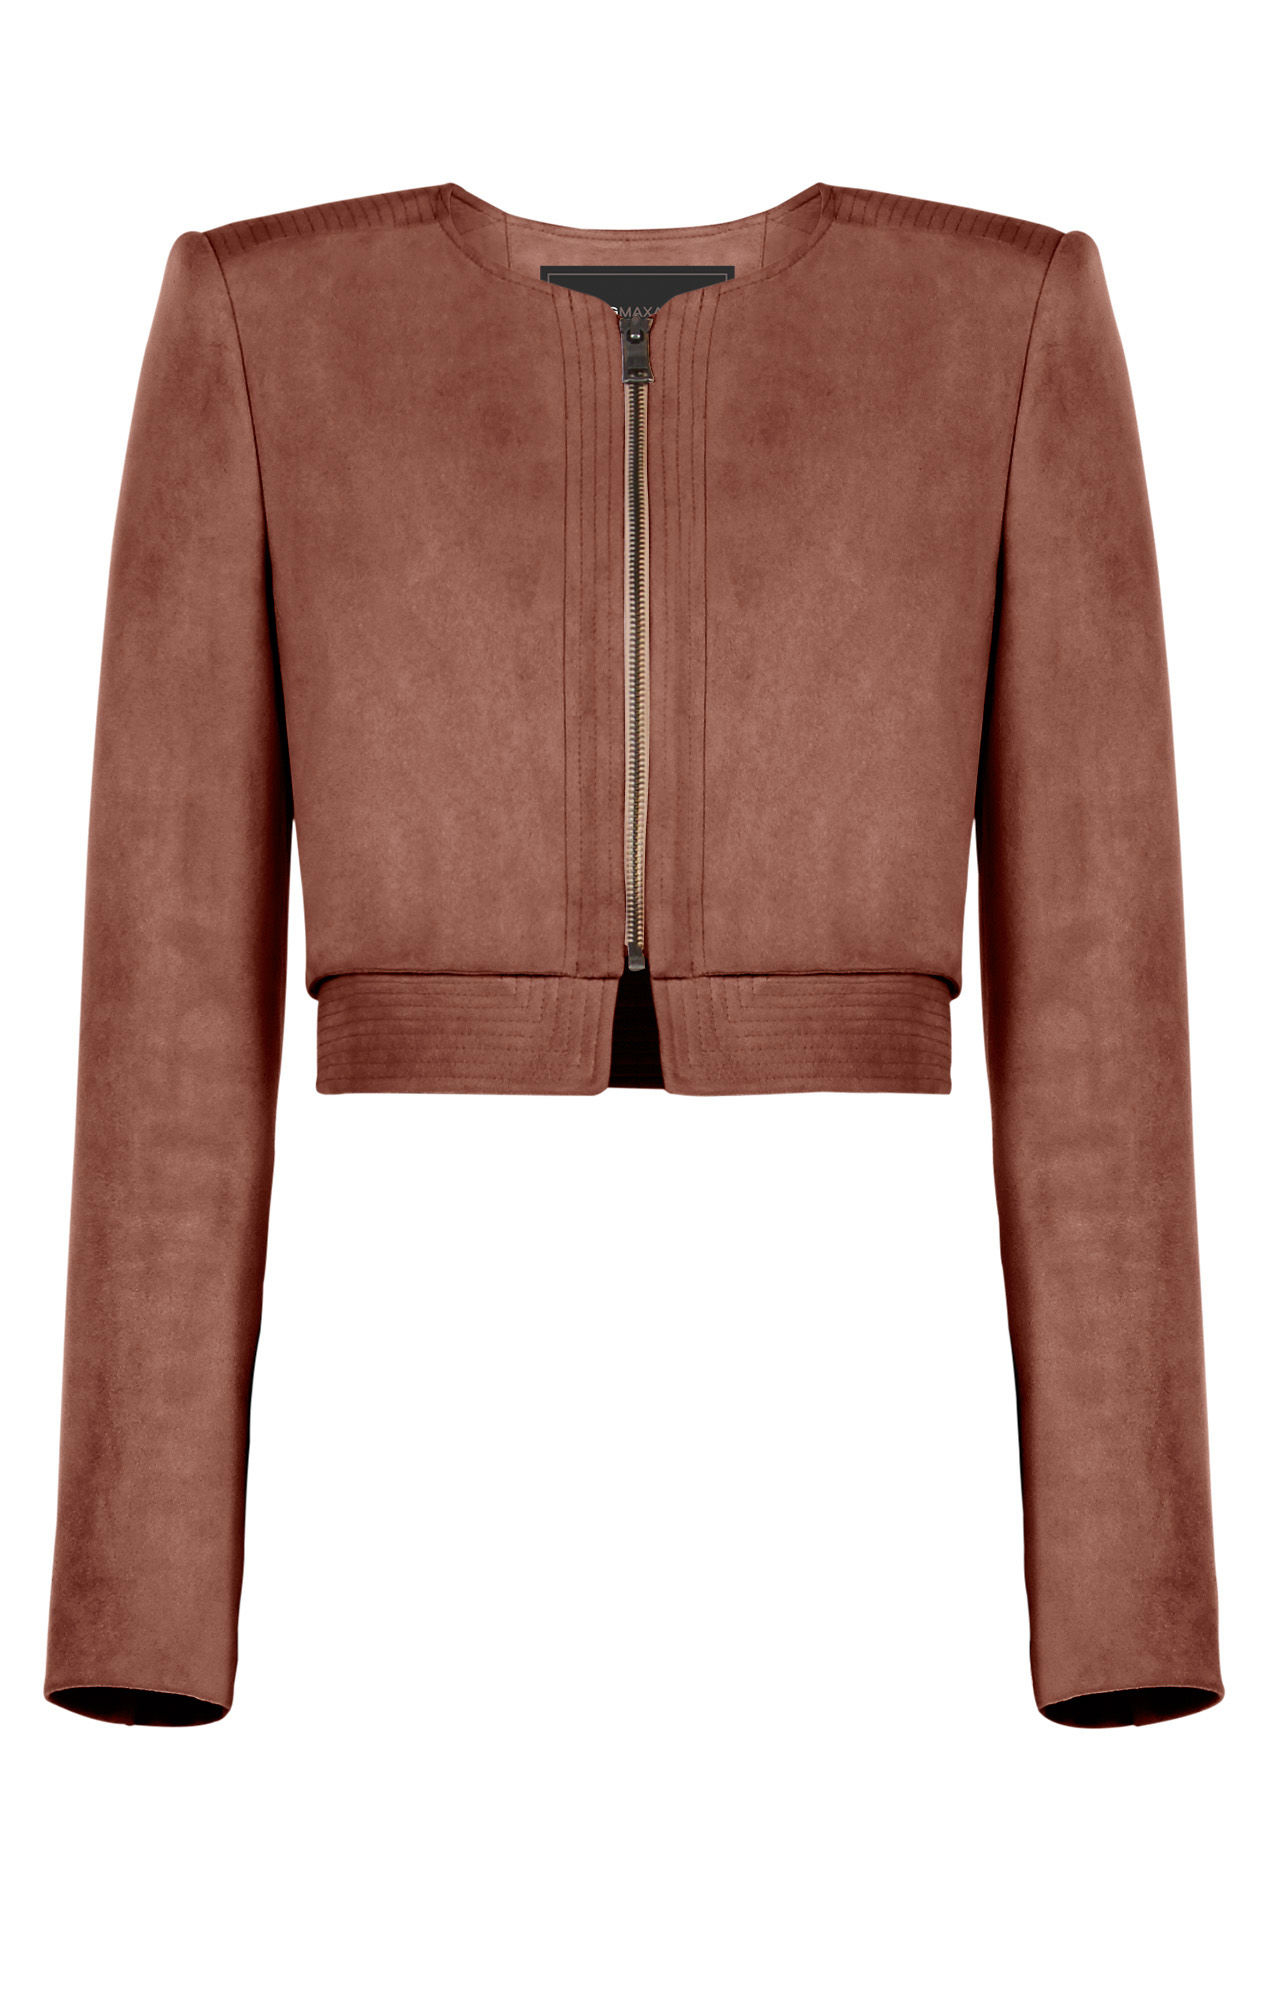 Suede Jacket Outfits For Men 20 Ways To Wear A Suede Jacket: Bcbgmaxazria Duke Faux-suede Jacket In Brown